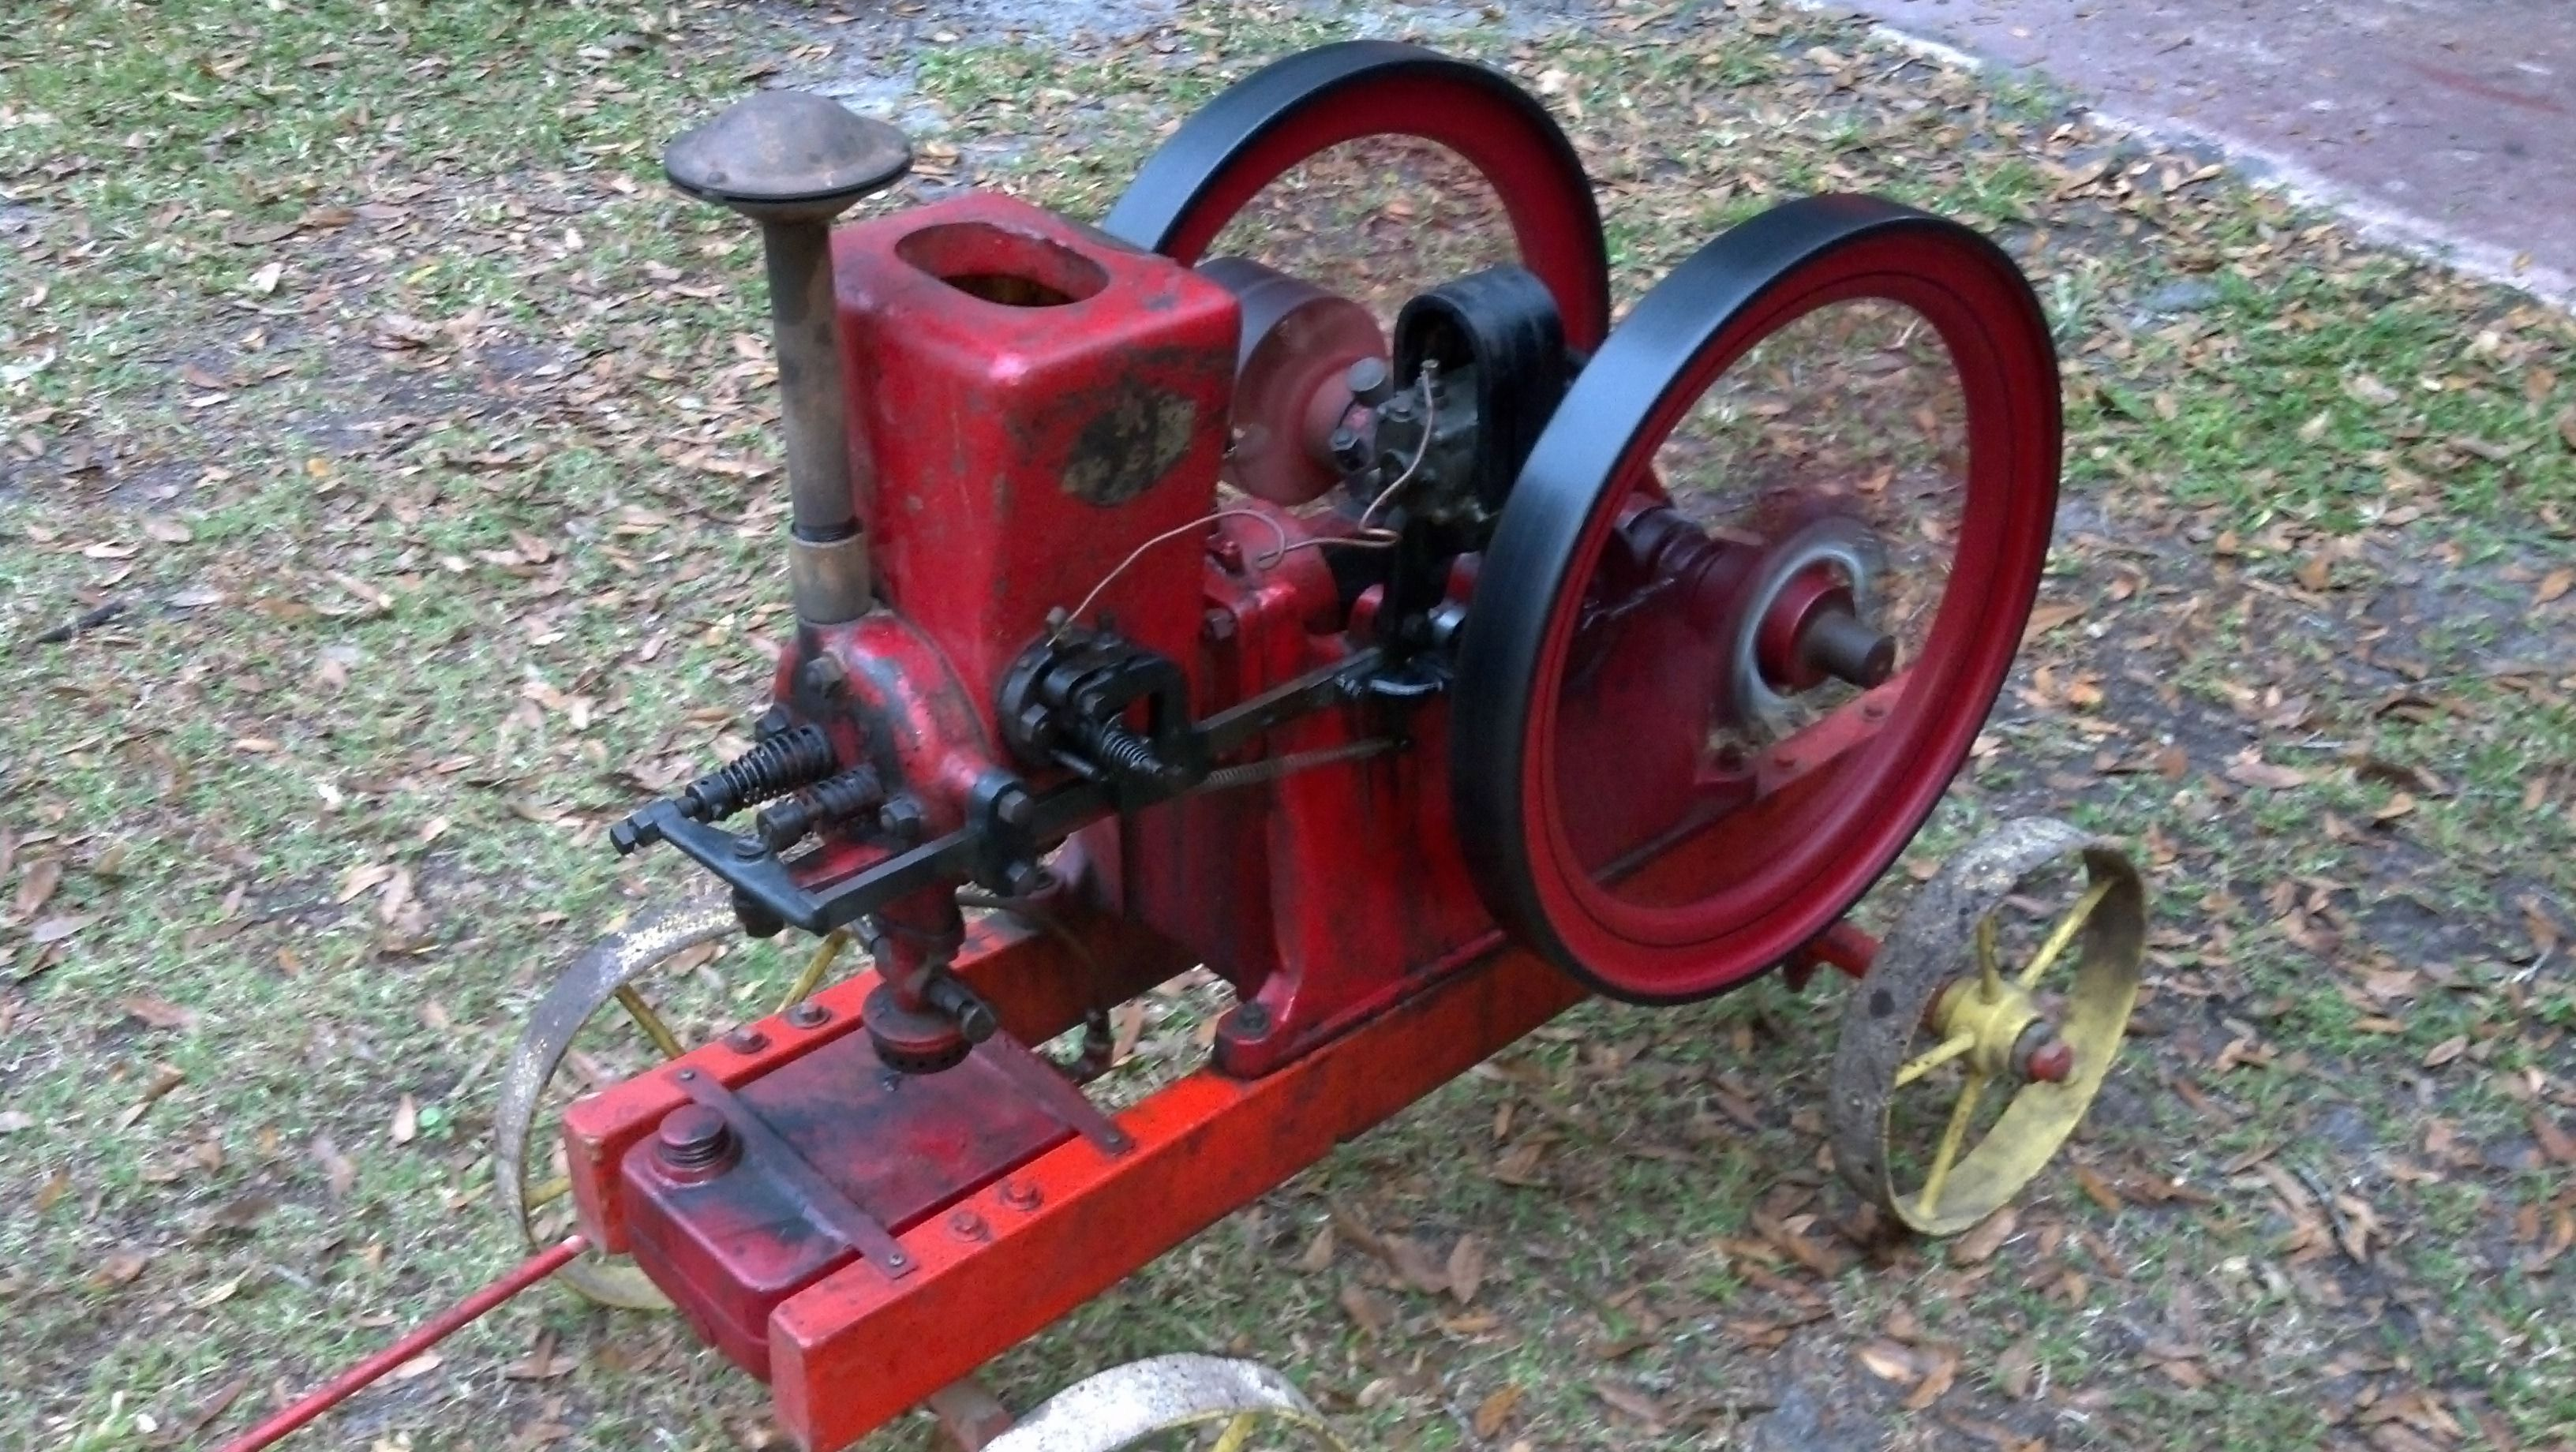 1924 --2 and 1/2 hp associated hit and miss engine on original